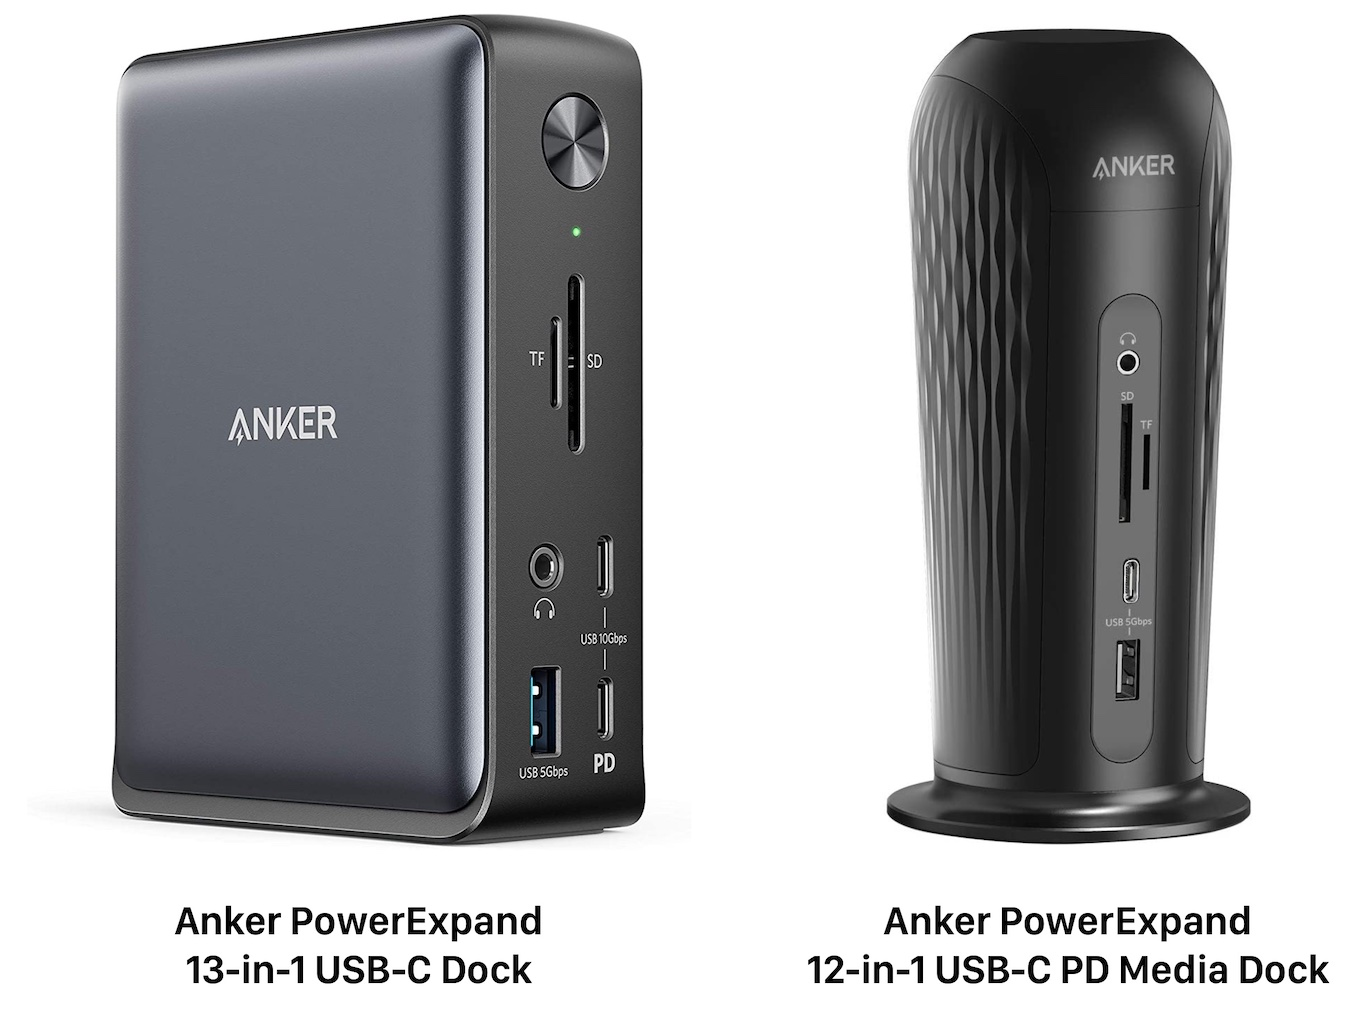 Anker PowerExpand 13-in-1 USB-C Dock